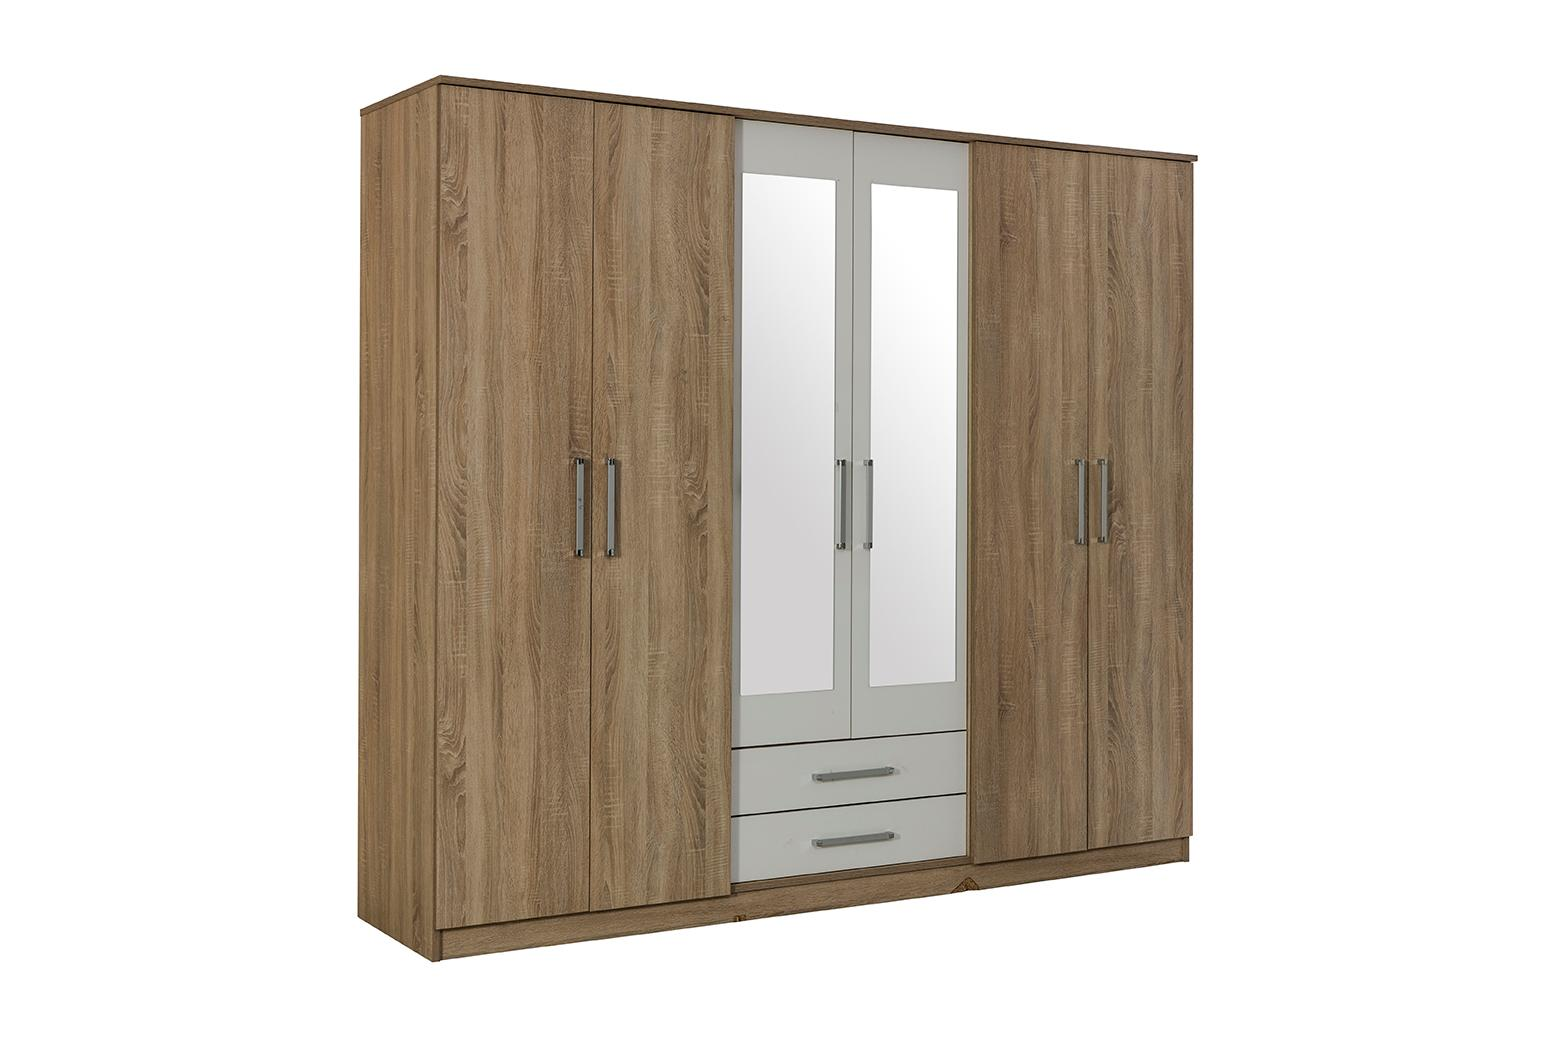 EMİRGAN Bedroom set